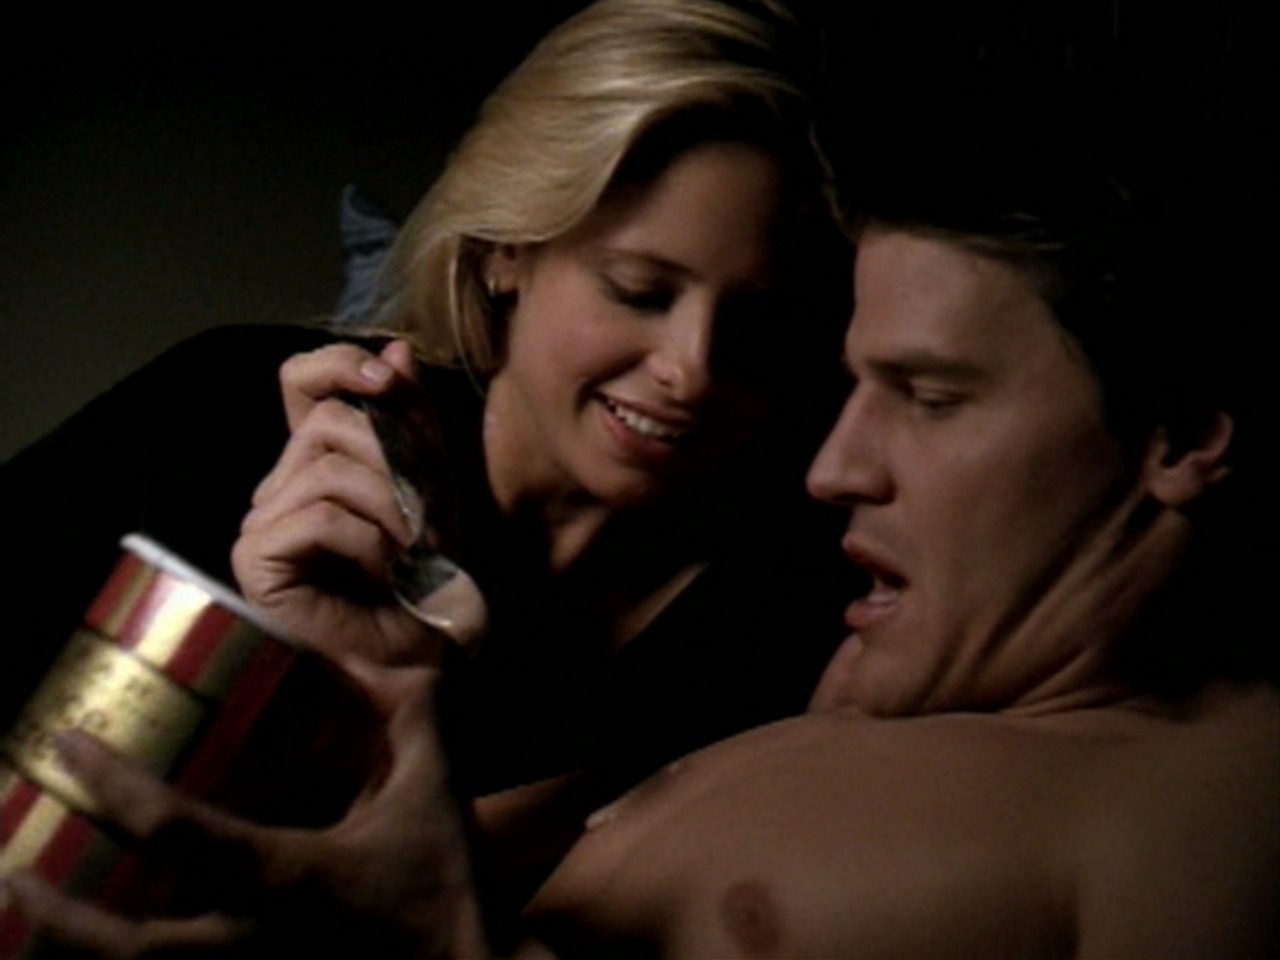 http://images2.fanpop.com/images/photos/8100000/Buffy-and-Angel-bangel-vs-spuffy-8136752-1280-960.jpg